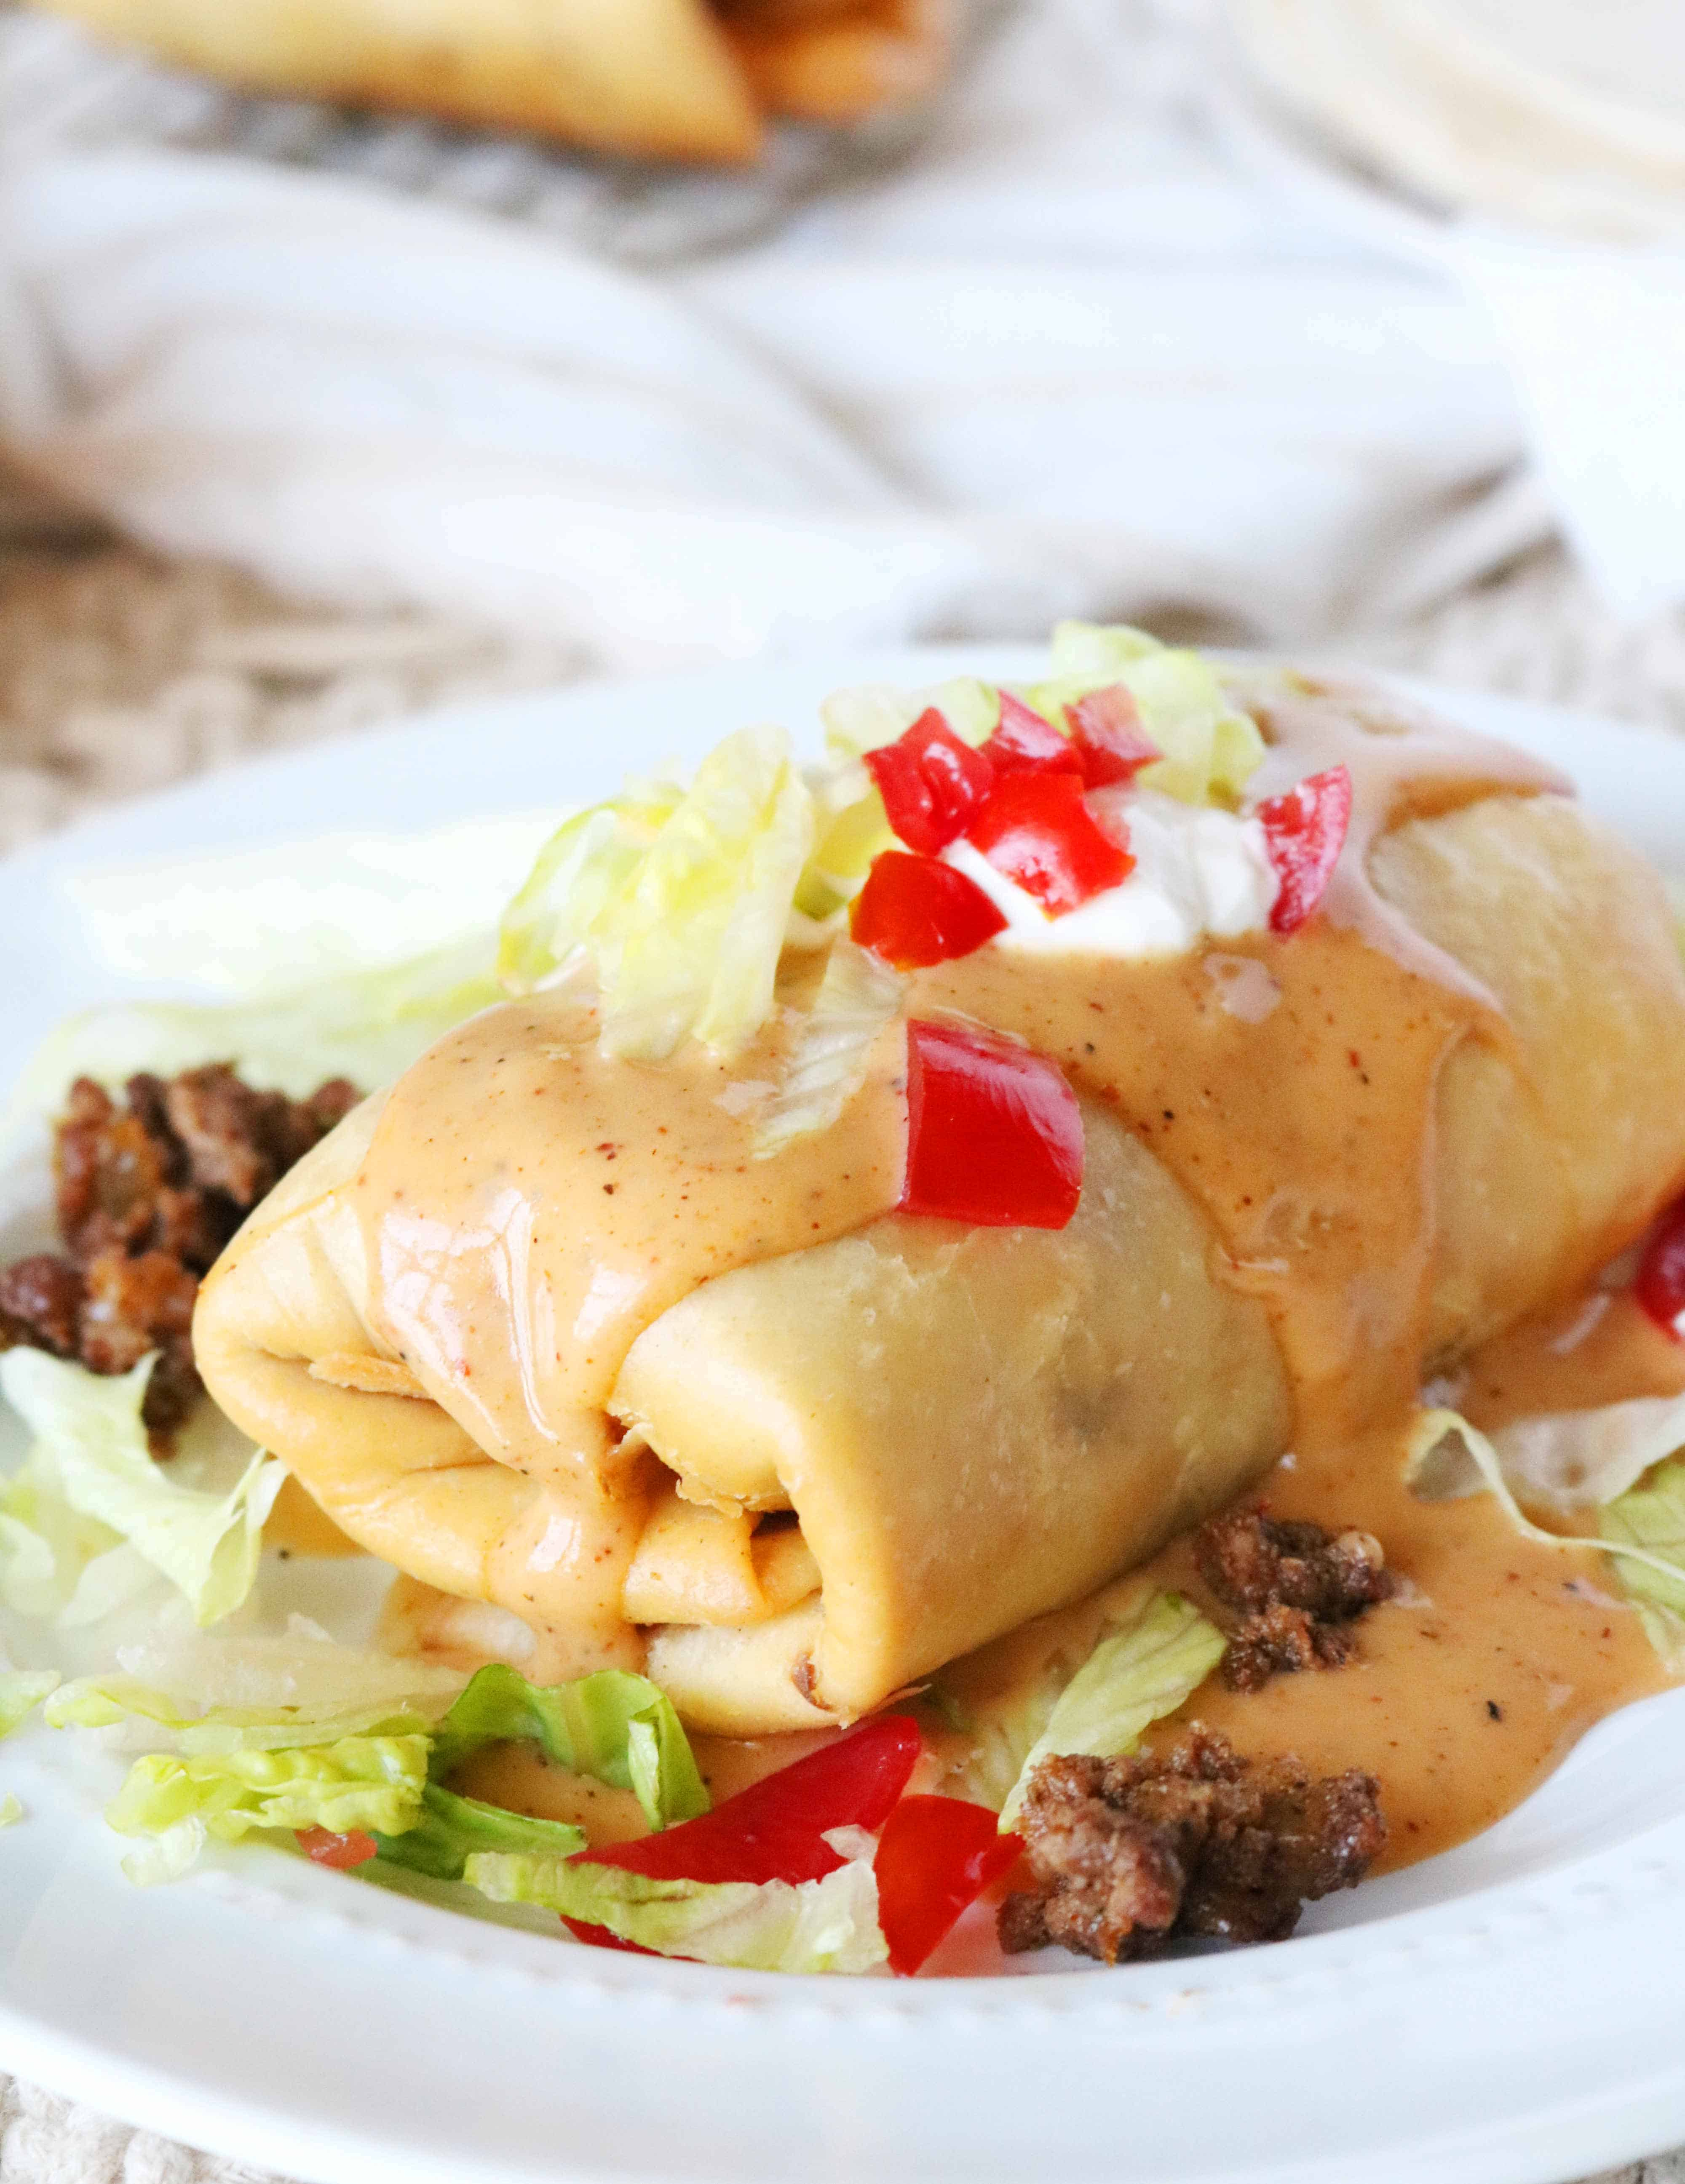 Homemade Beef Chimichangas The Anthony Kitchen